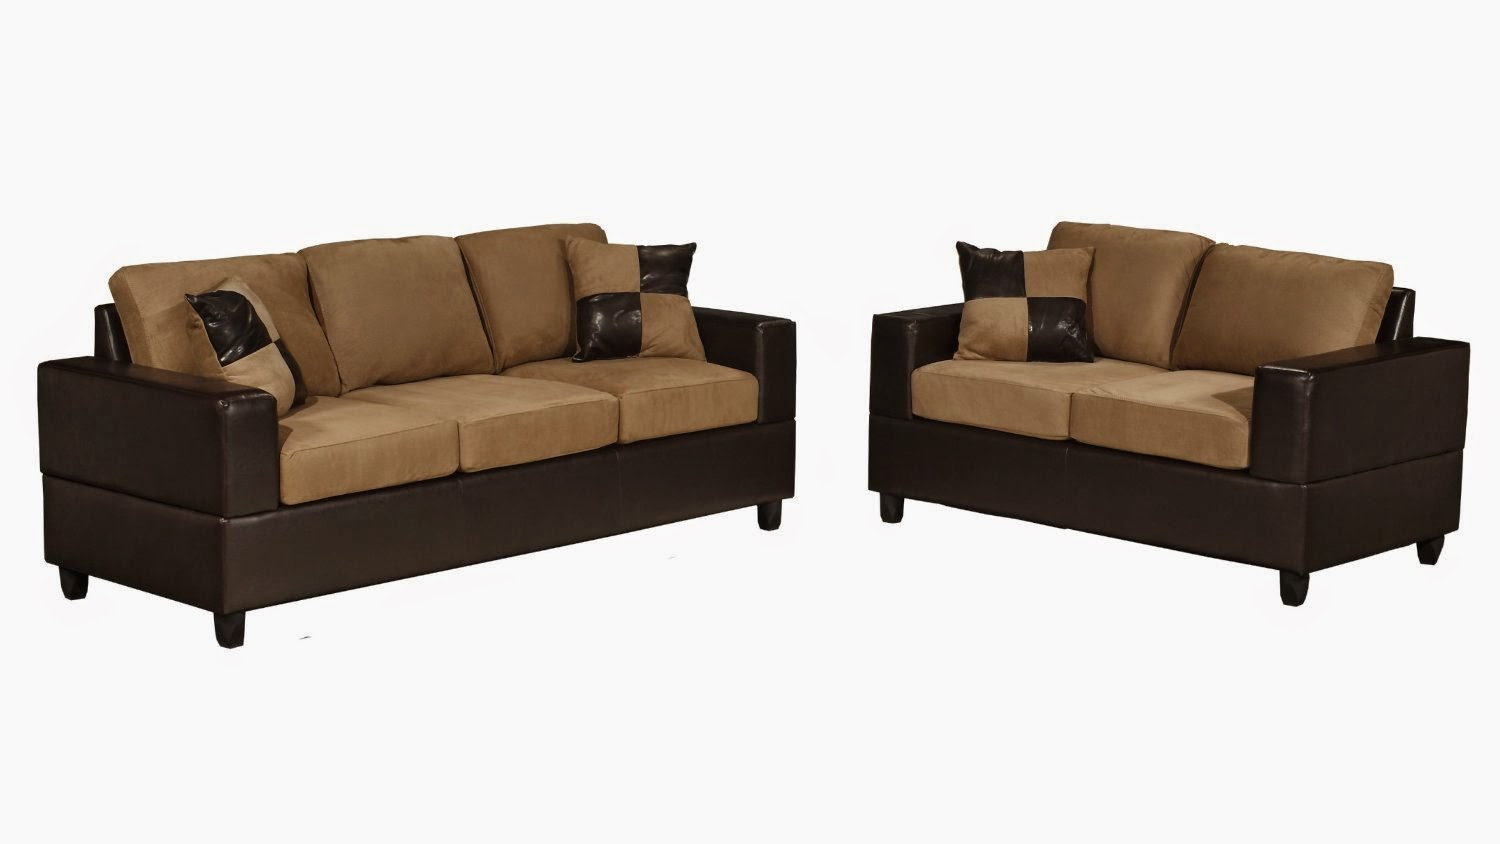 Sofa for sale sofa sets for sale for Sofa set for sale cheap